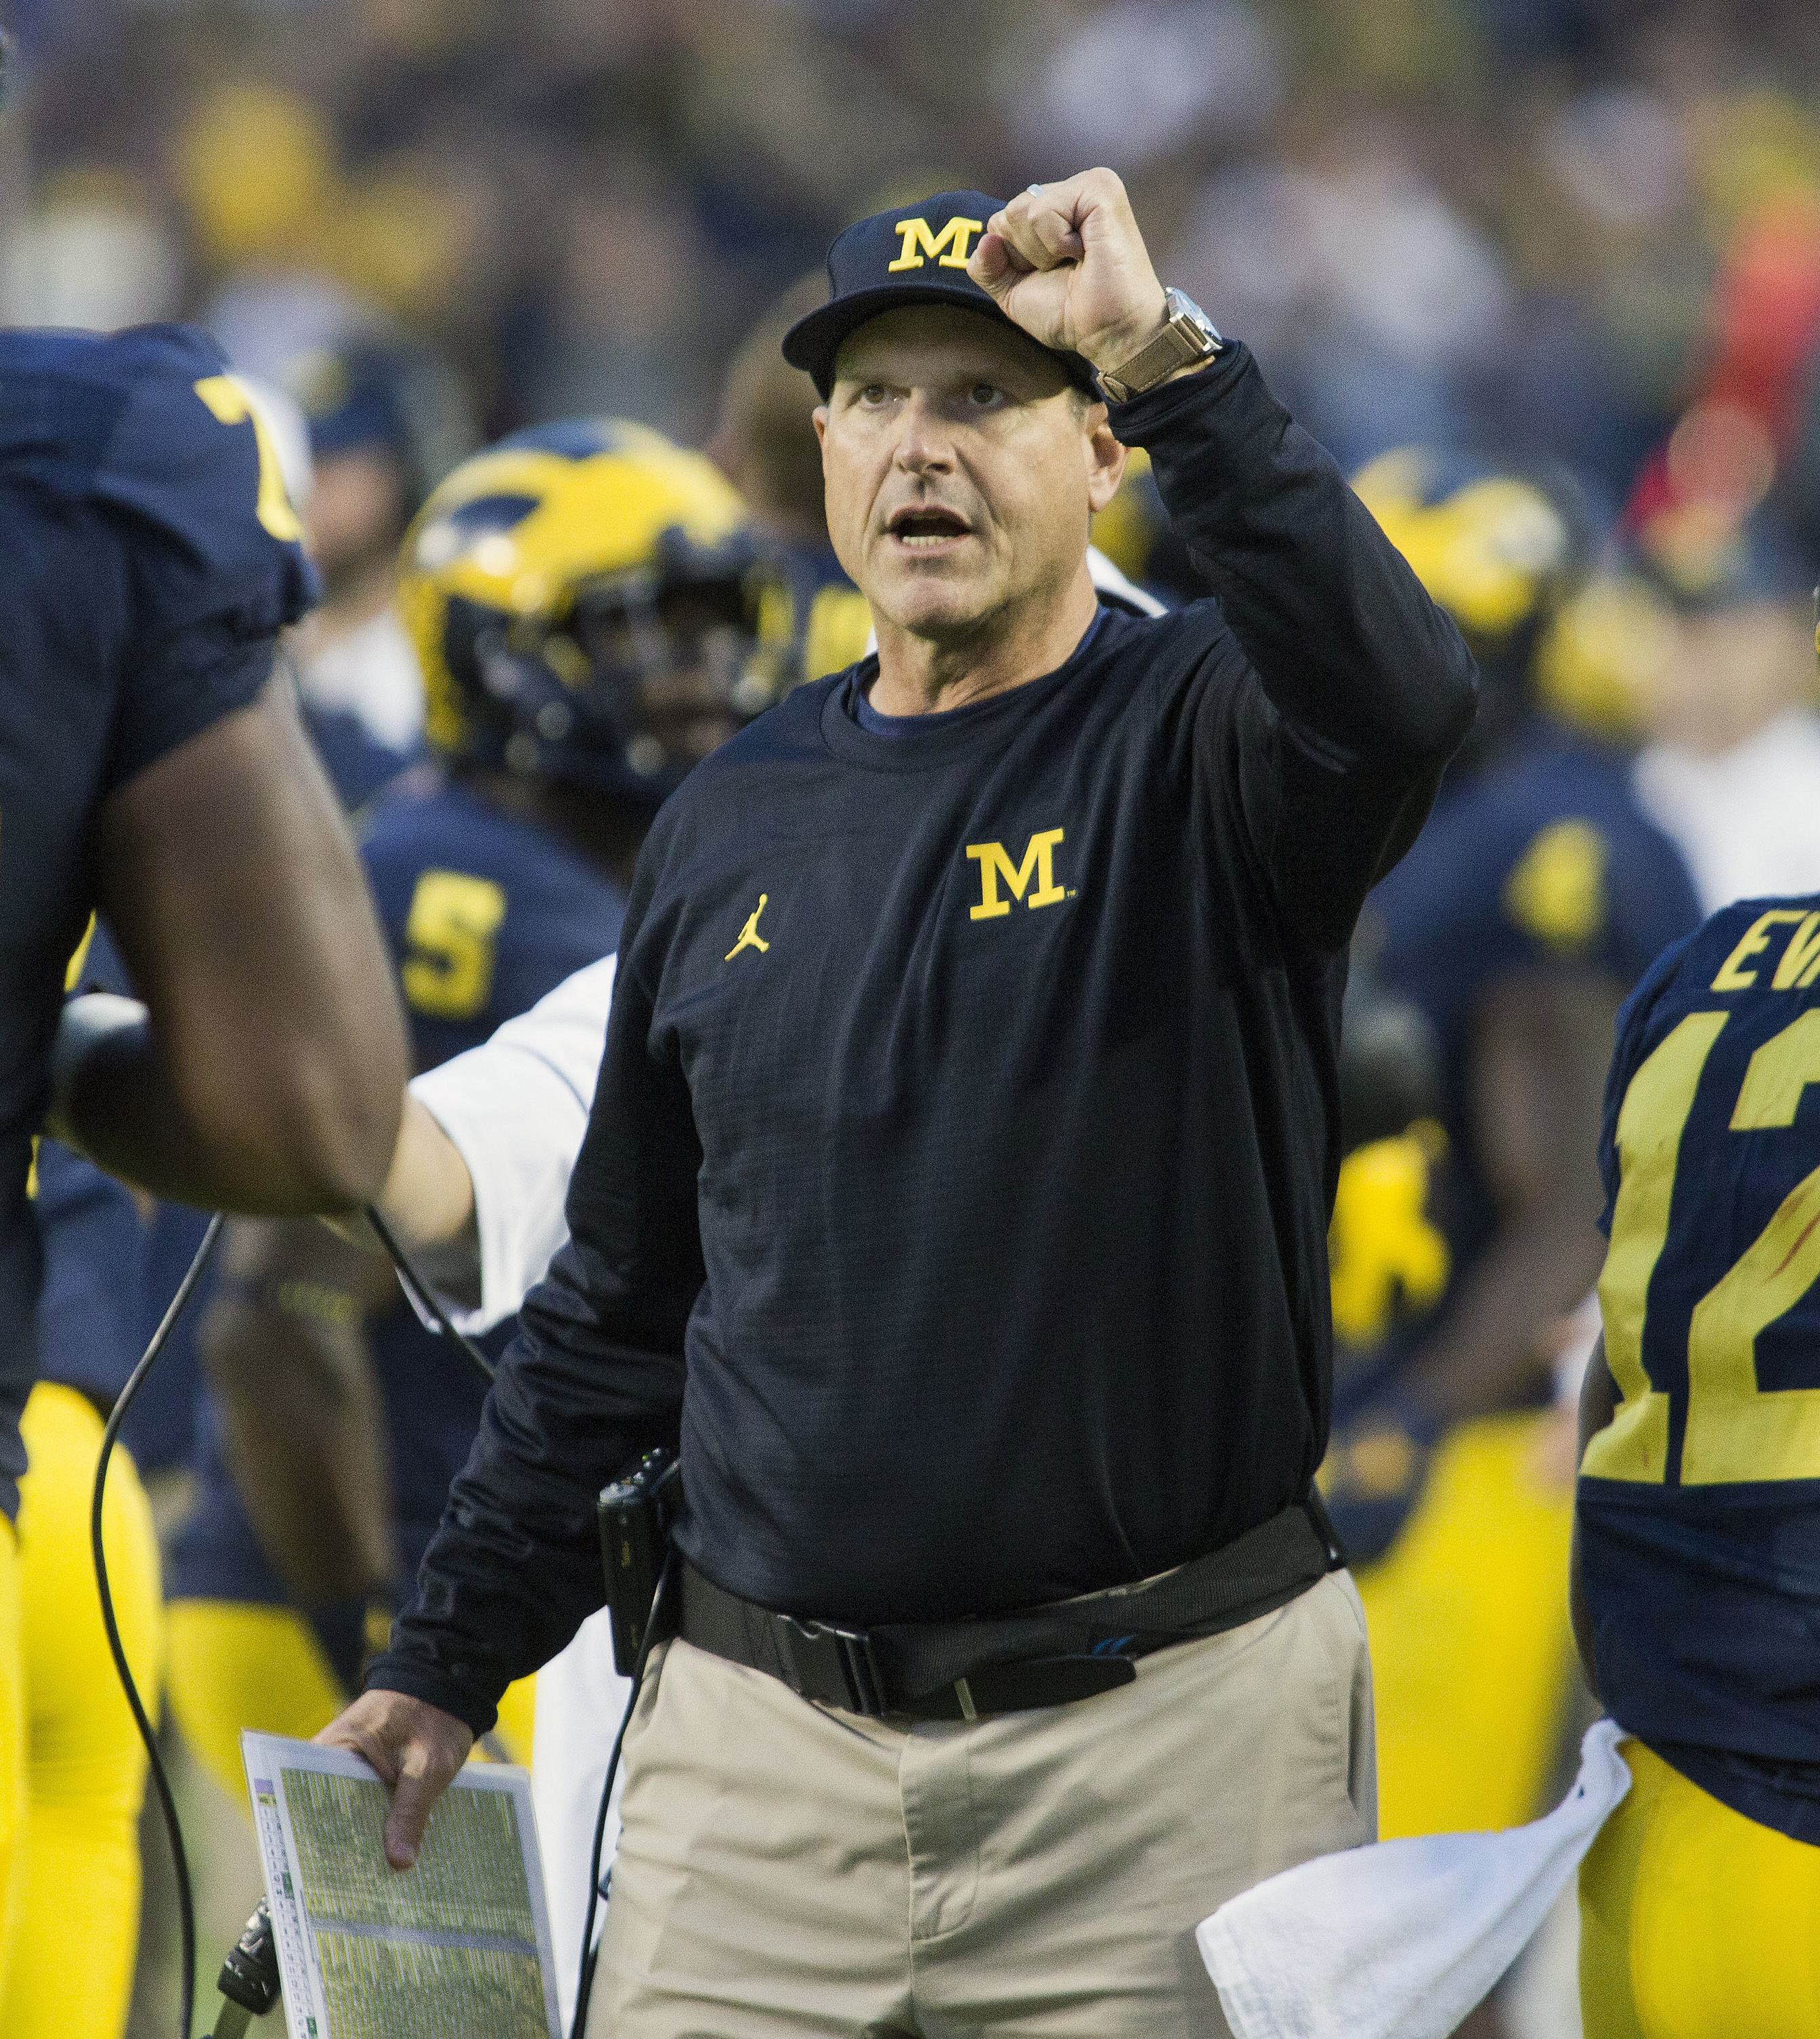 FILE - In this Oct. 1, 2016, file photo, Michigan head coach Jim Harbaugh cheers on his players after a Michigan touchdown in the fourth quarter of an NCAA college football game against Wisconsin at Michigan Stadium in Ann Arbor, Mich. Clearly, No. 2 Ohio